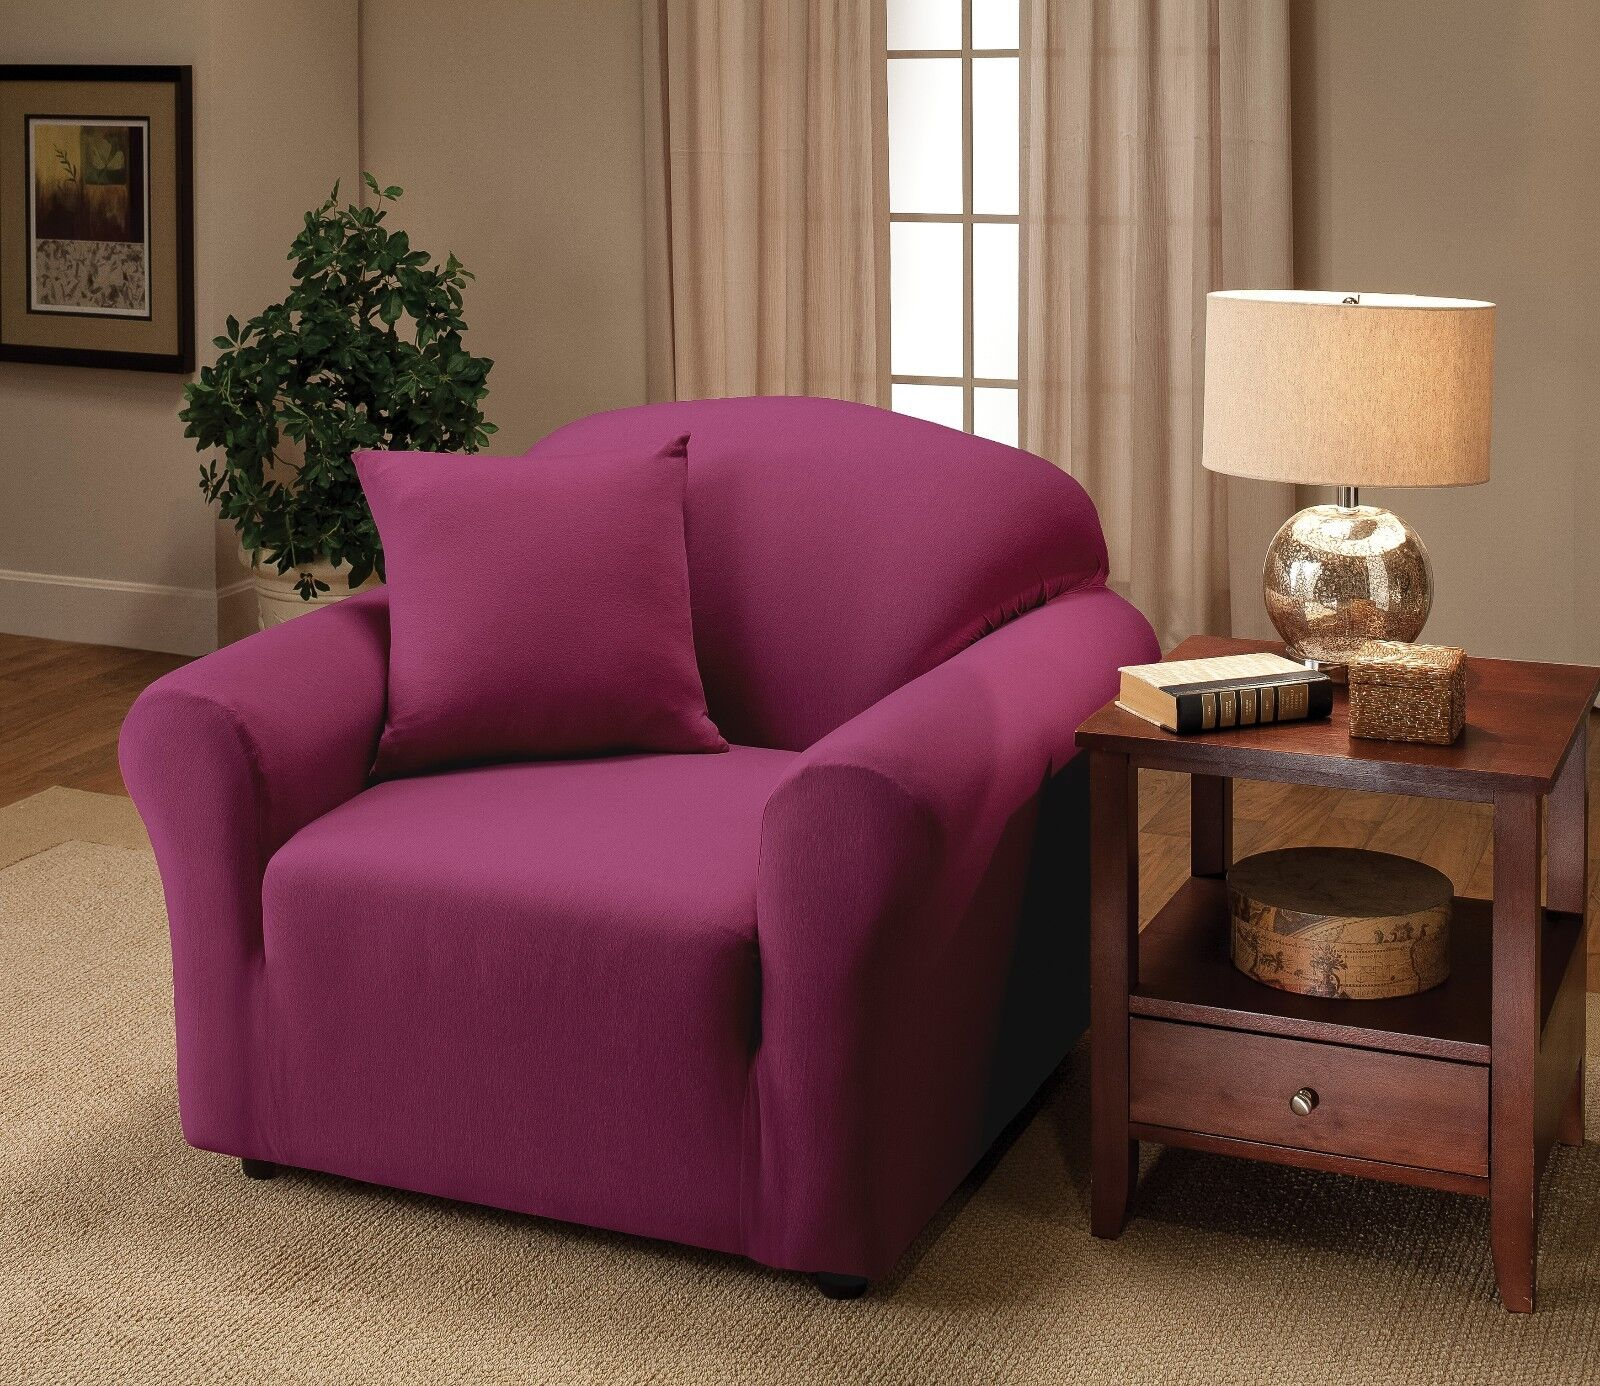 jersey purple chair slipcover also in sofa